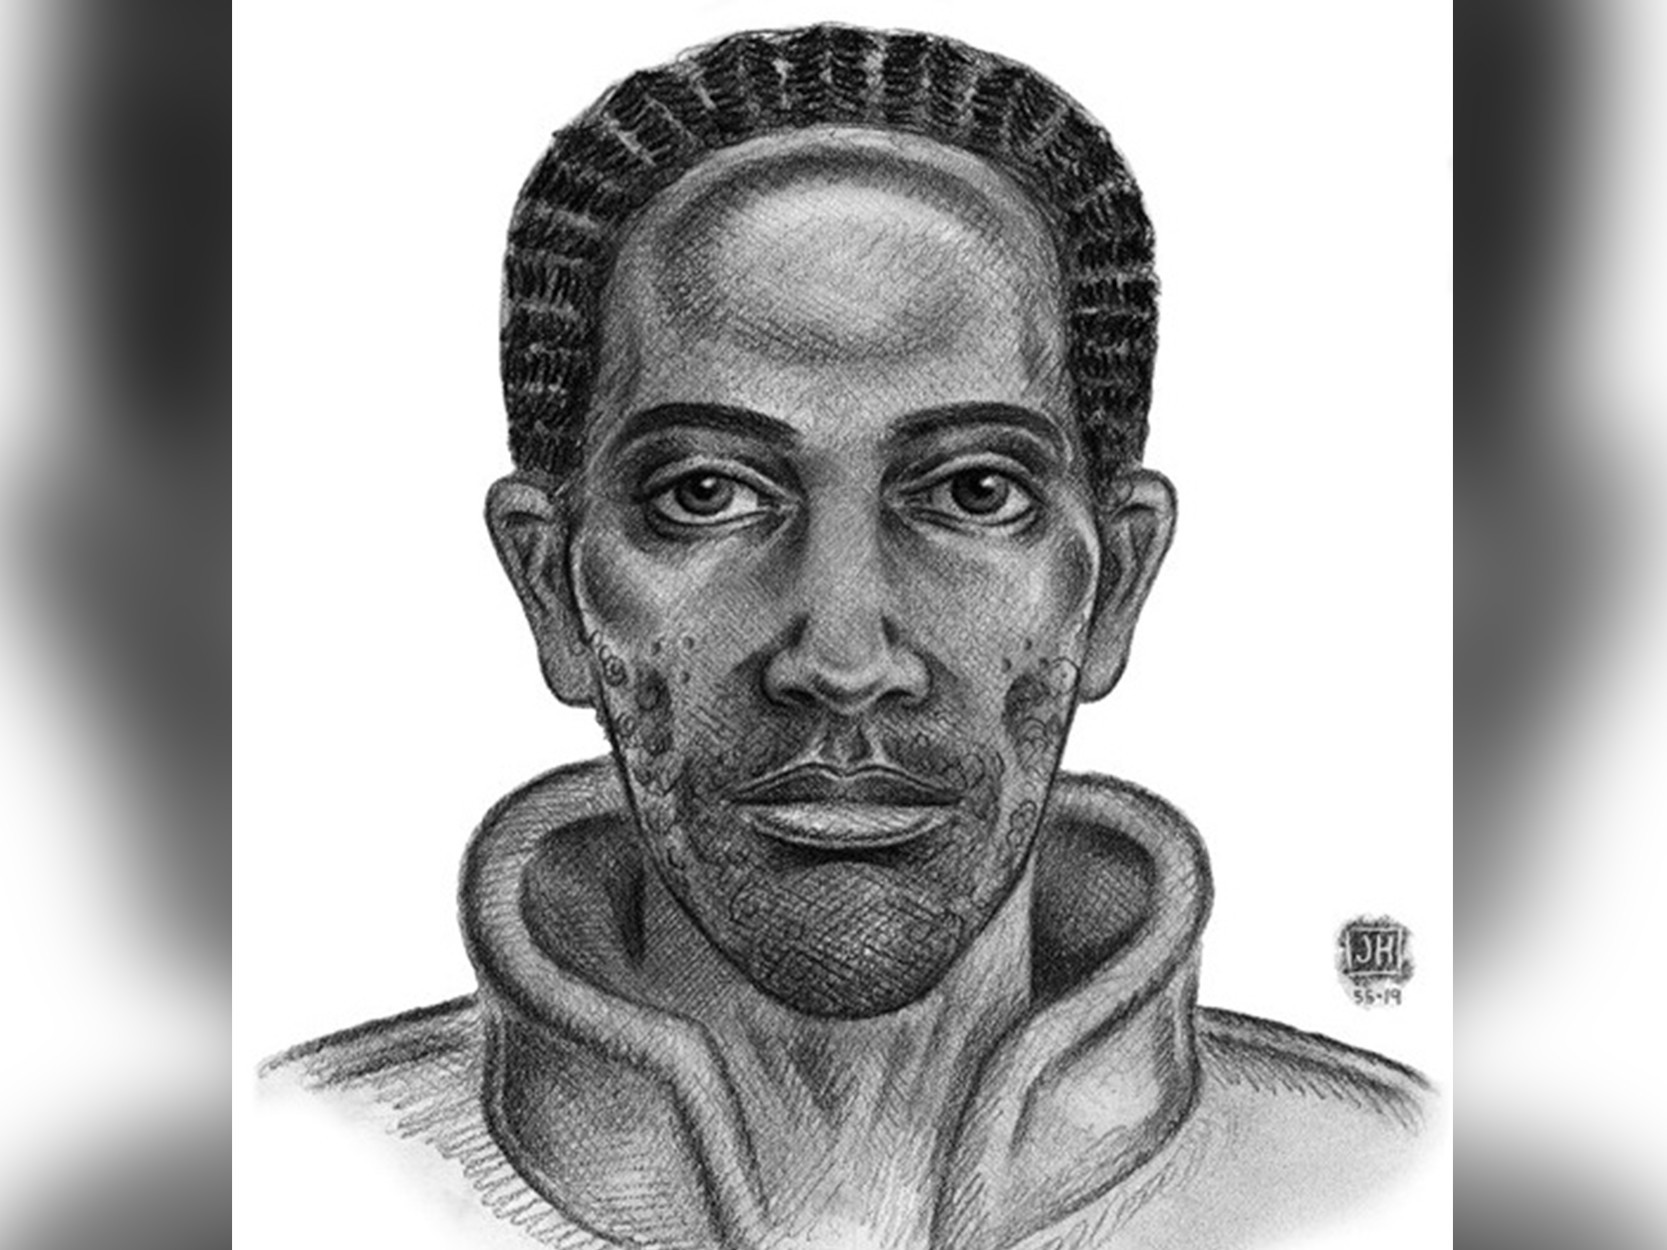 NYPD releases sketch of suspect in anti-gay hammer attack